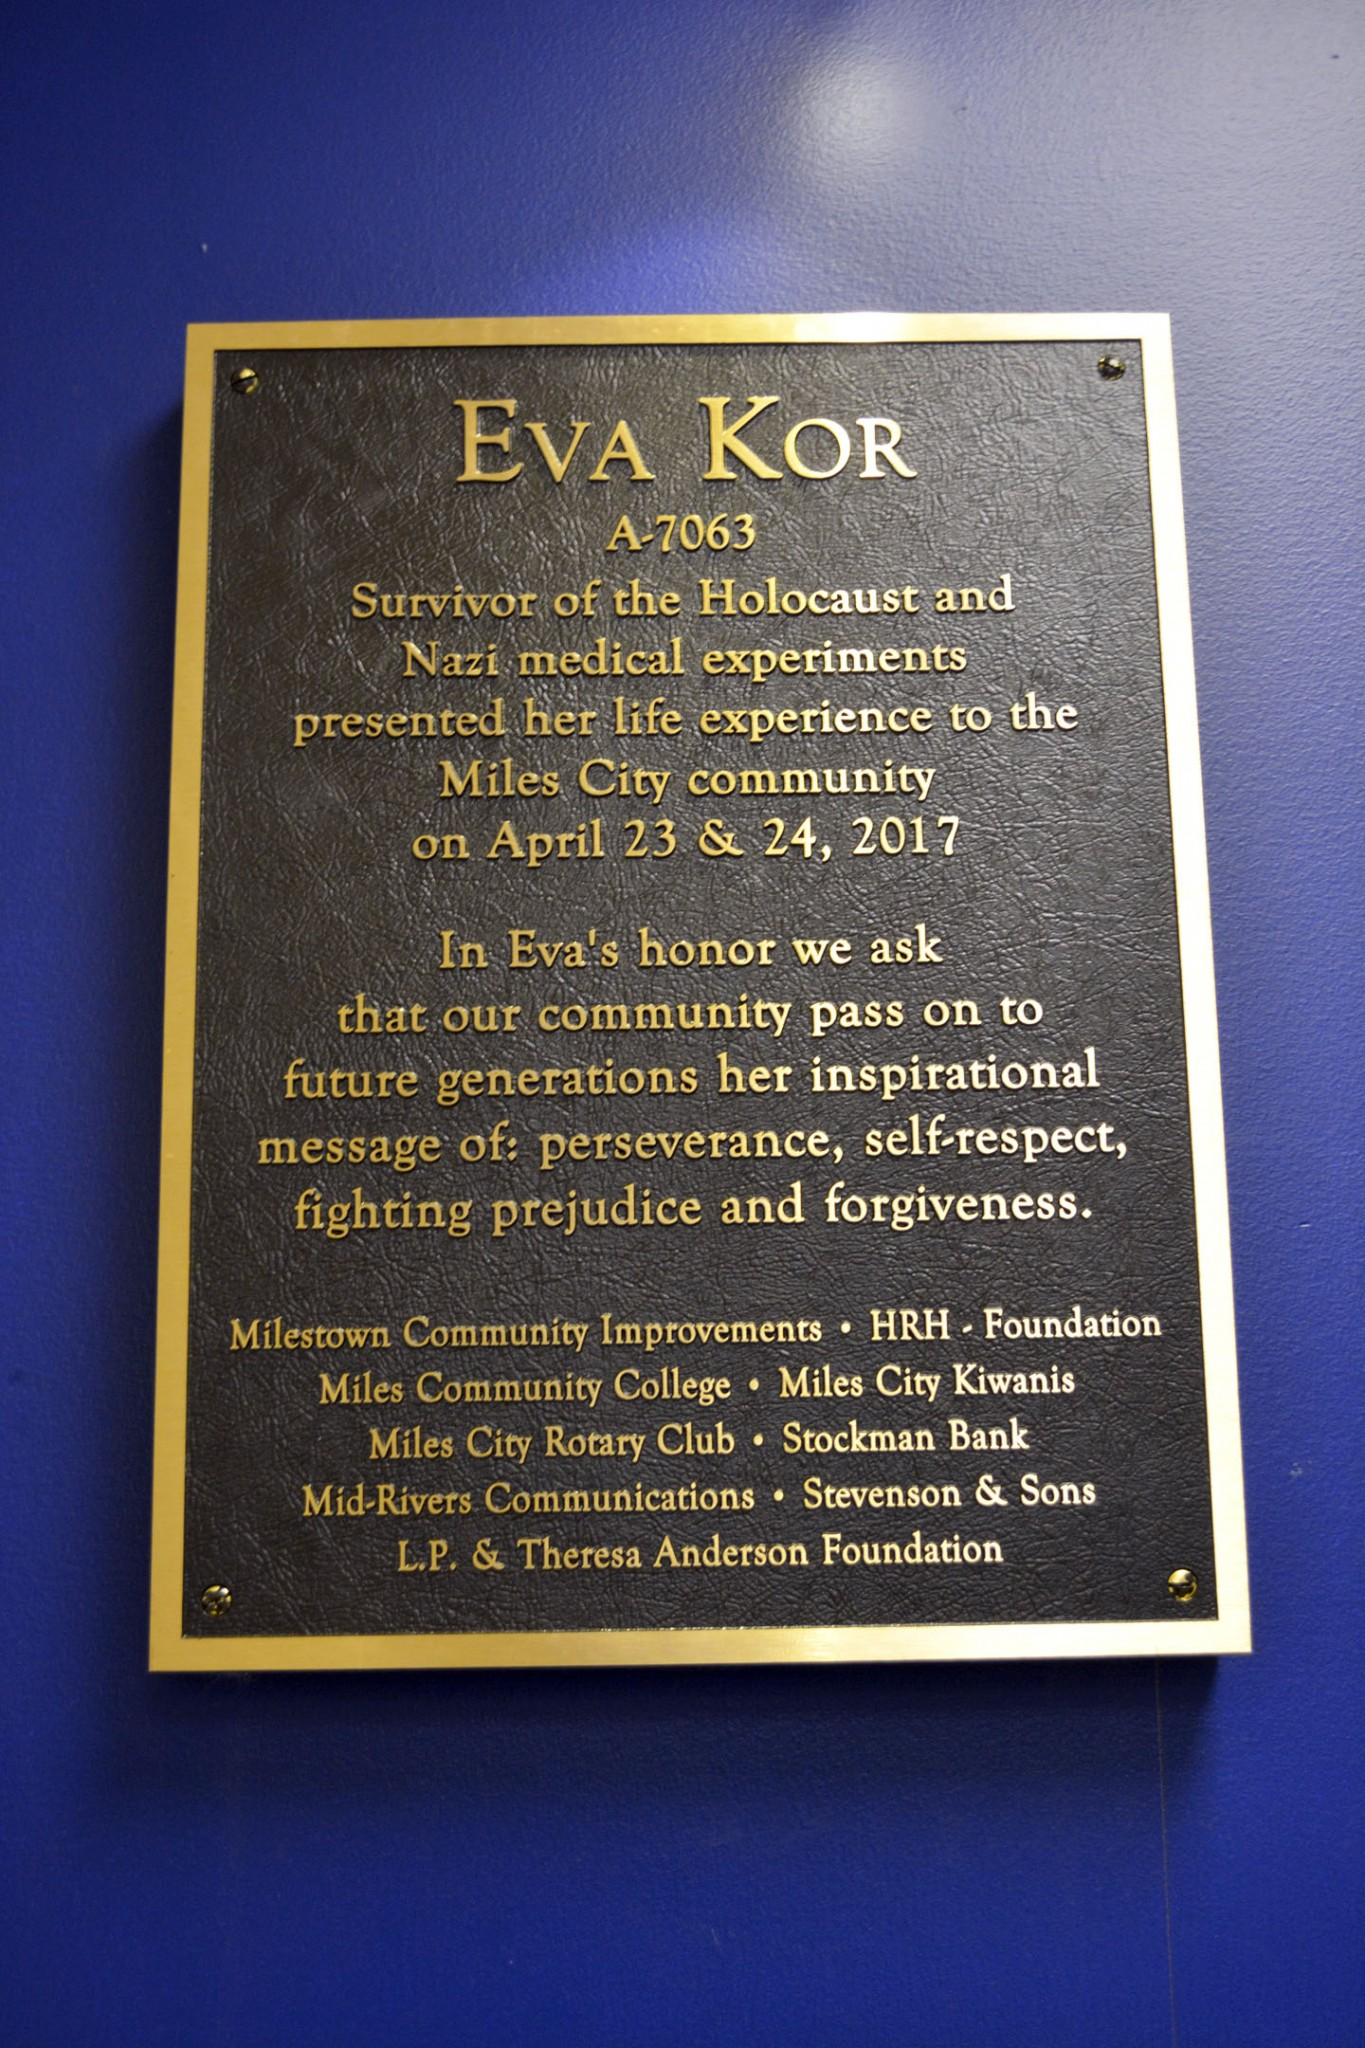 <strong>The plaque dedicated to Eve Kor hangs in the gym lobby at the high school. The money  to buy the plaque was donated by a number of local businesses and organizations, which inlcudes Milestown Community Improvements, Holy Rosary Healthcare Foundation, Miles Community College, Miles City Kiwanis, Miles City Rotary Club, Stockman Bank, Mid-Rivers Communications, Stevenson & Sons and the L.P. & Theresa Anderson Foundation.</strong>